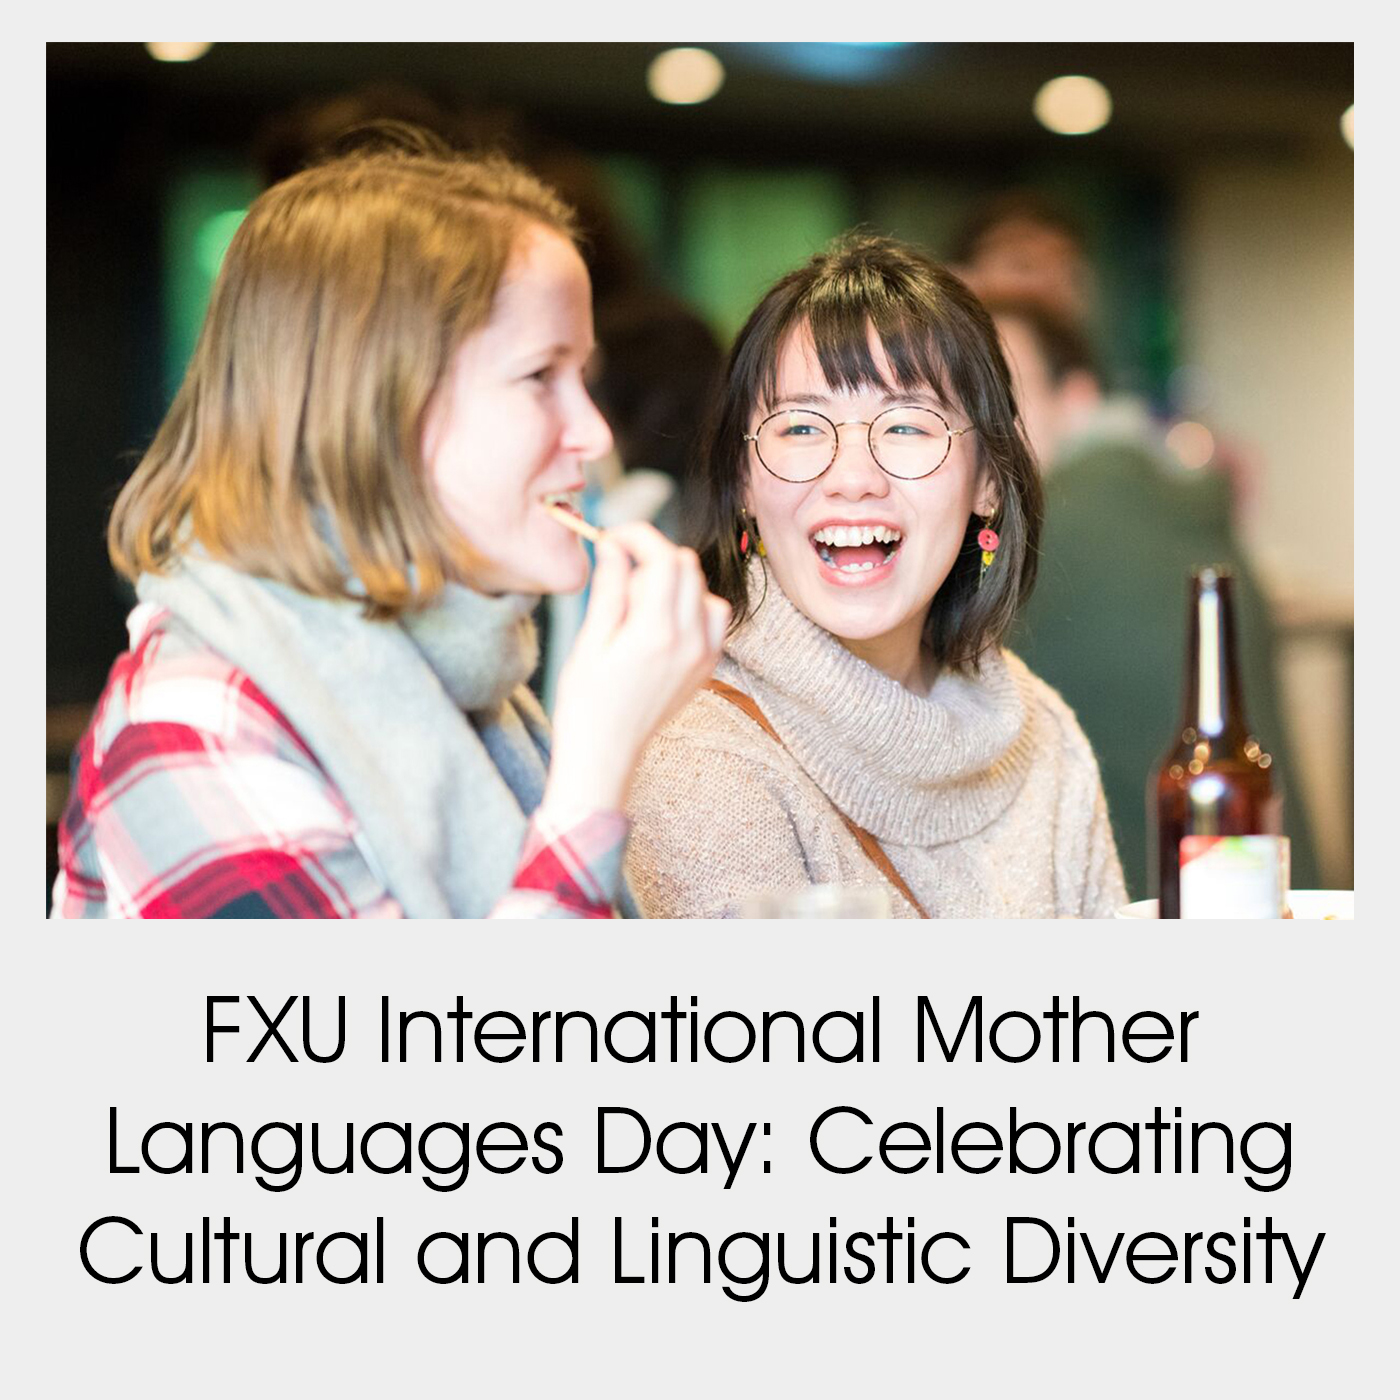 FXU Mother Language Day